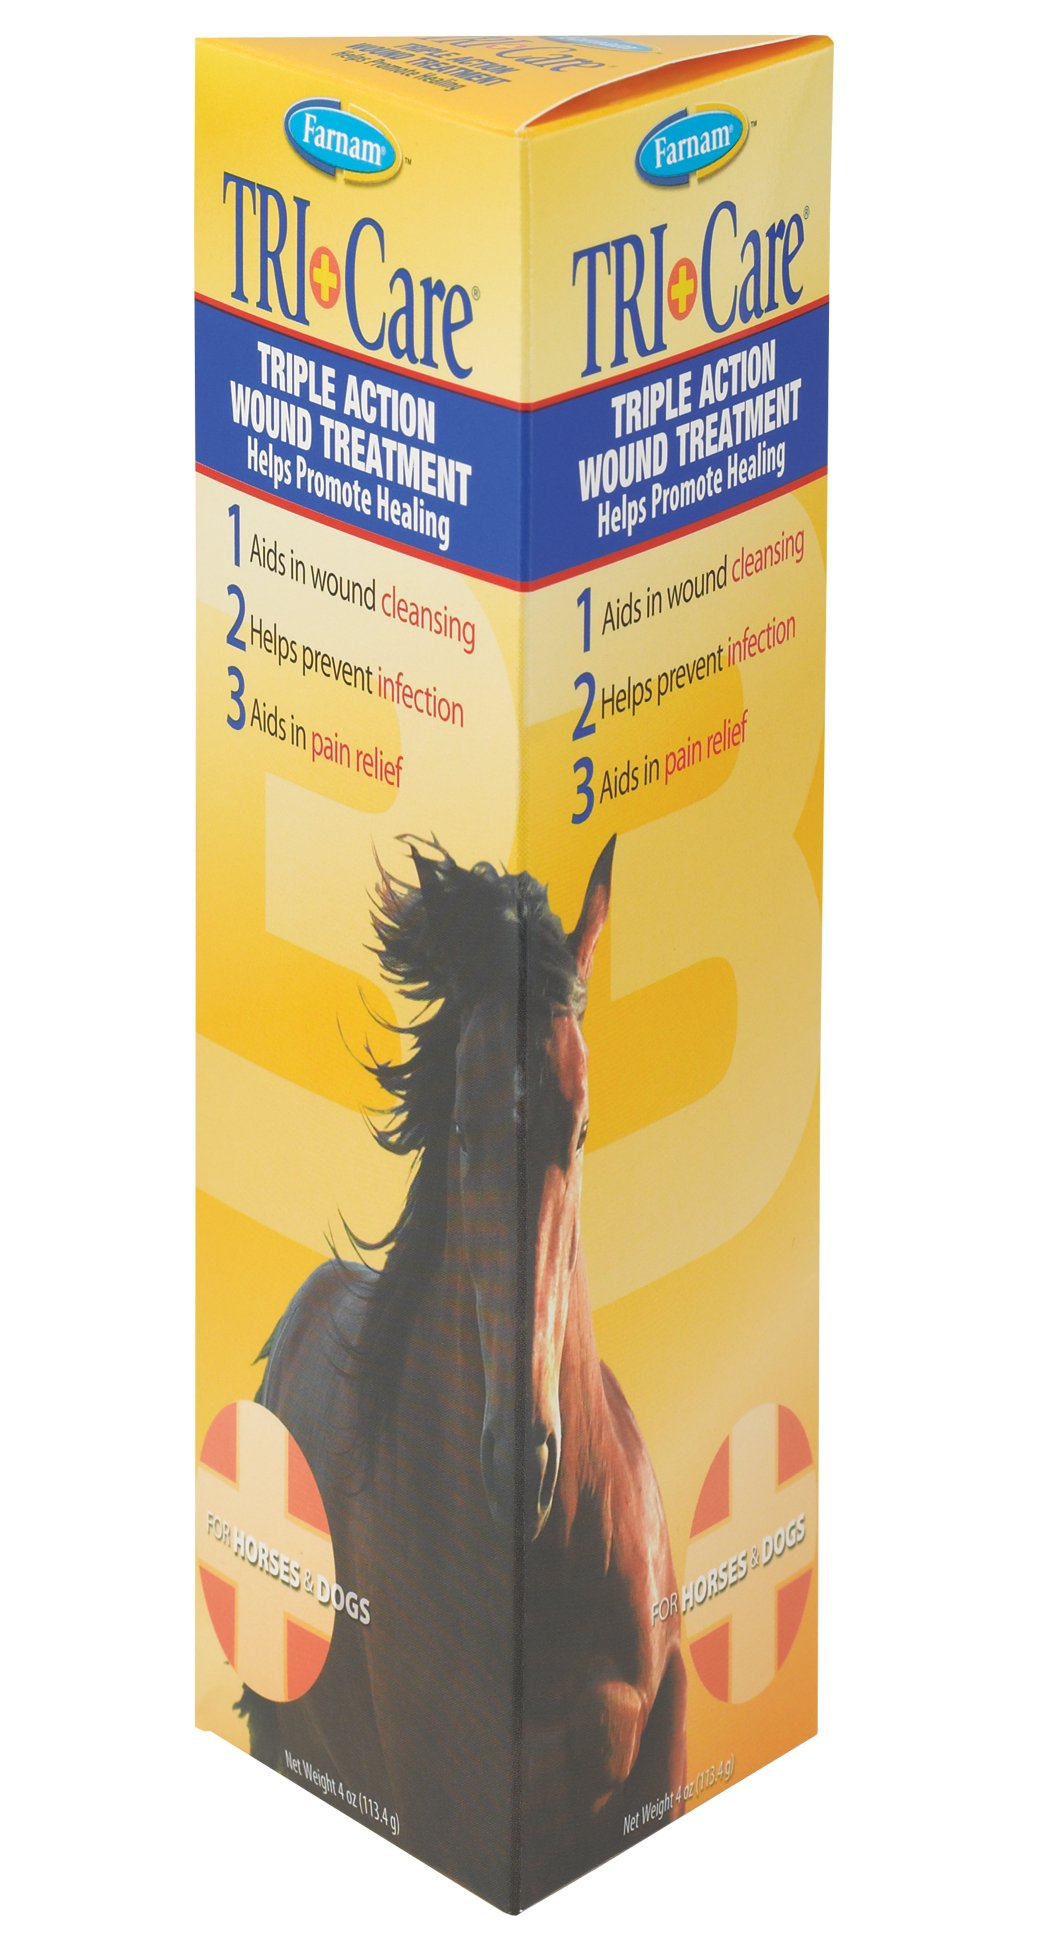 Farnam Tri-Care Triple Action Wound Treatment, 4 oz. by Farnam (Image #1)